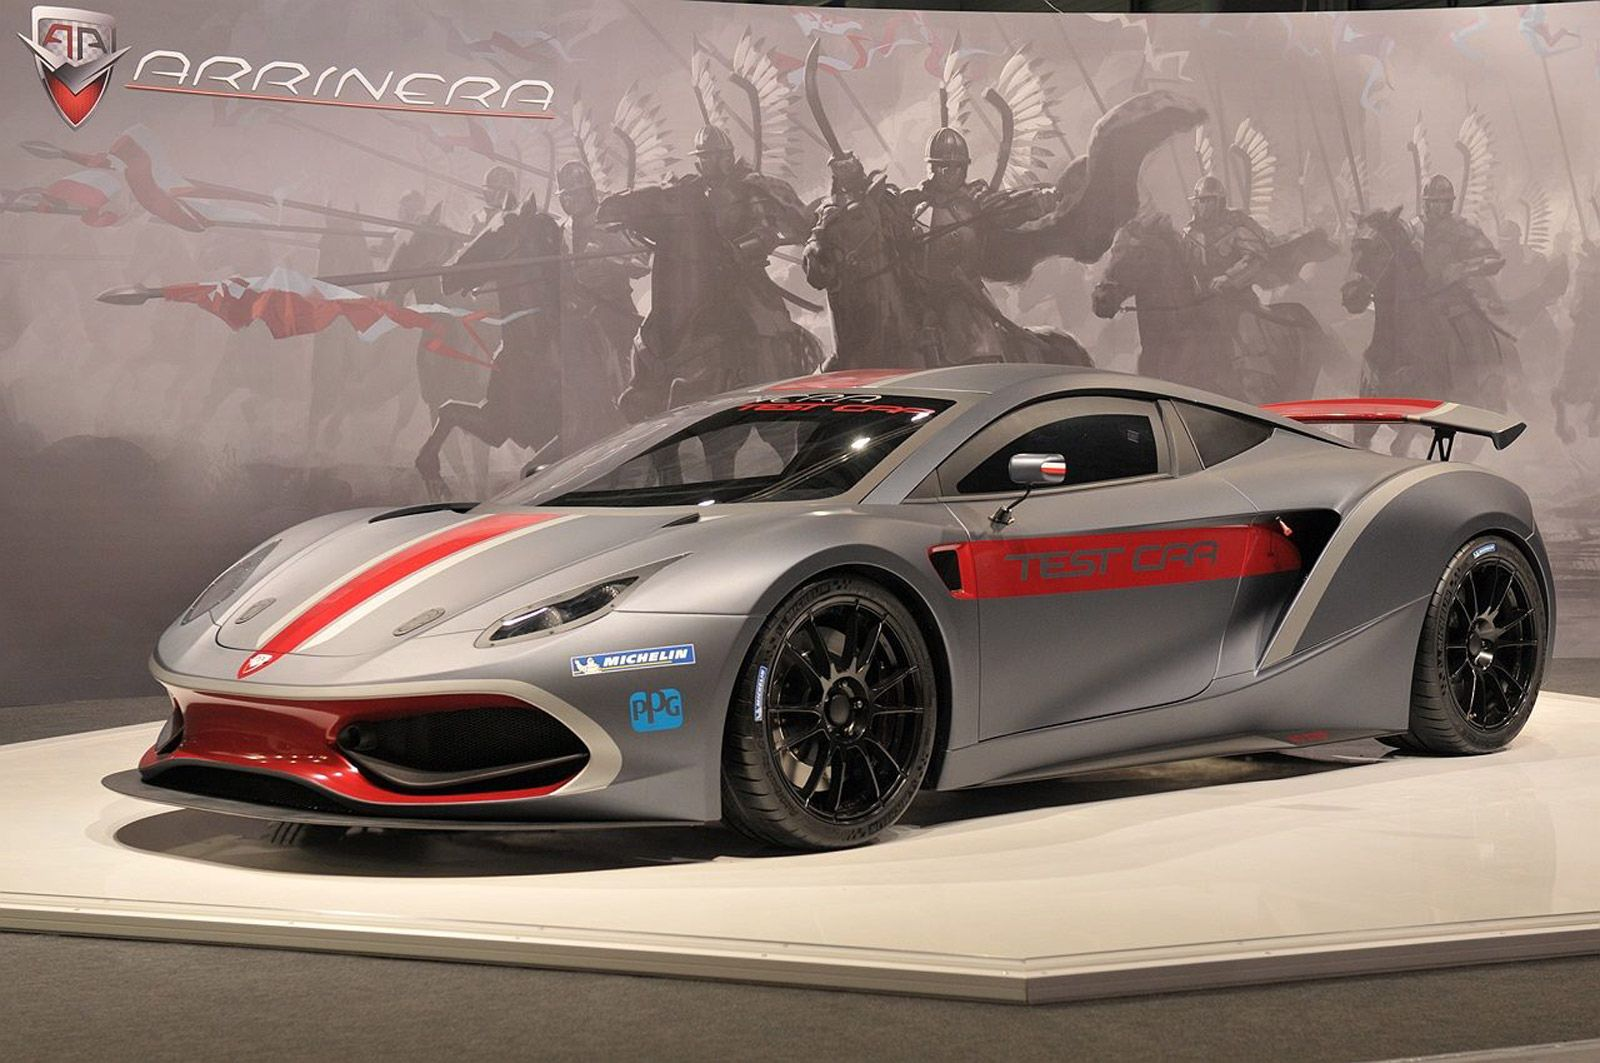 Polish Supercar Manufacturer Arrinera Promises Launch Of Hussarya By Late 2016 Super Cars Dream Car Garage Classy Cars